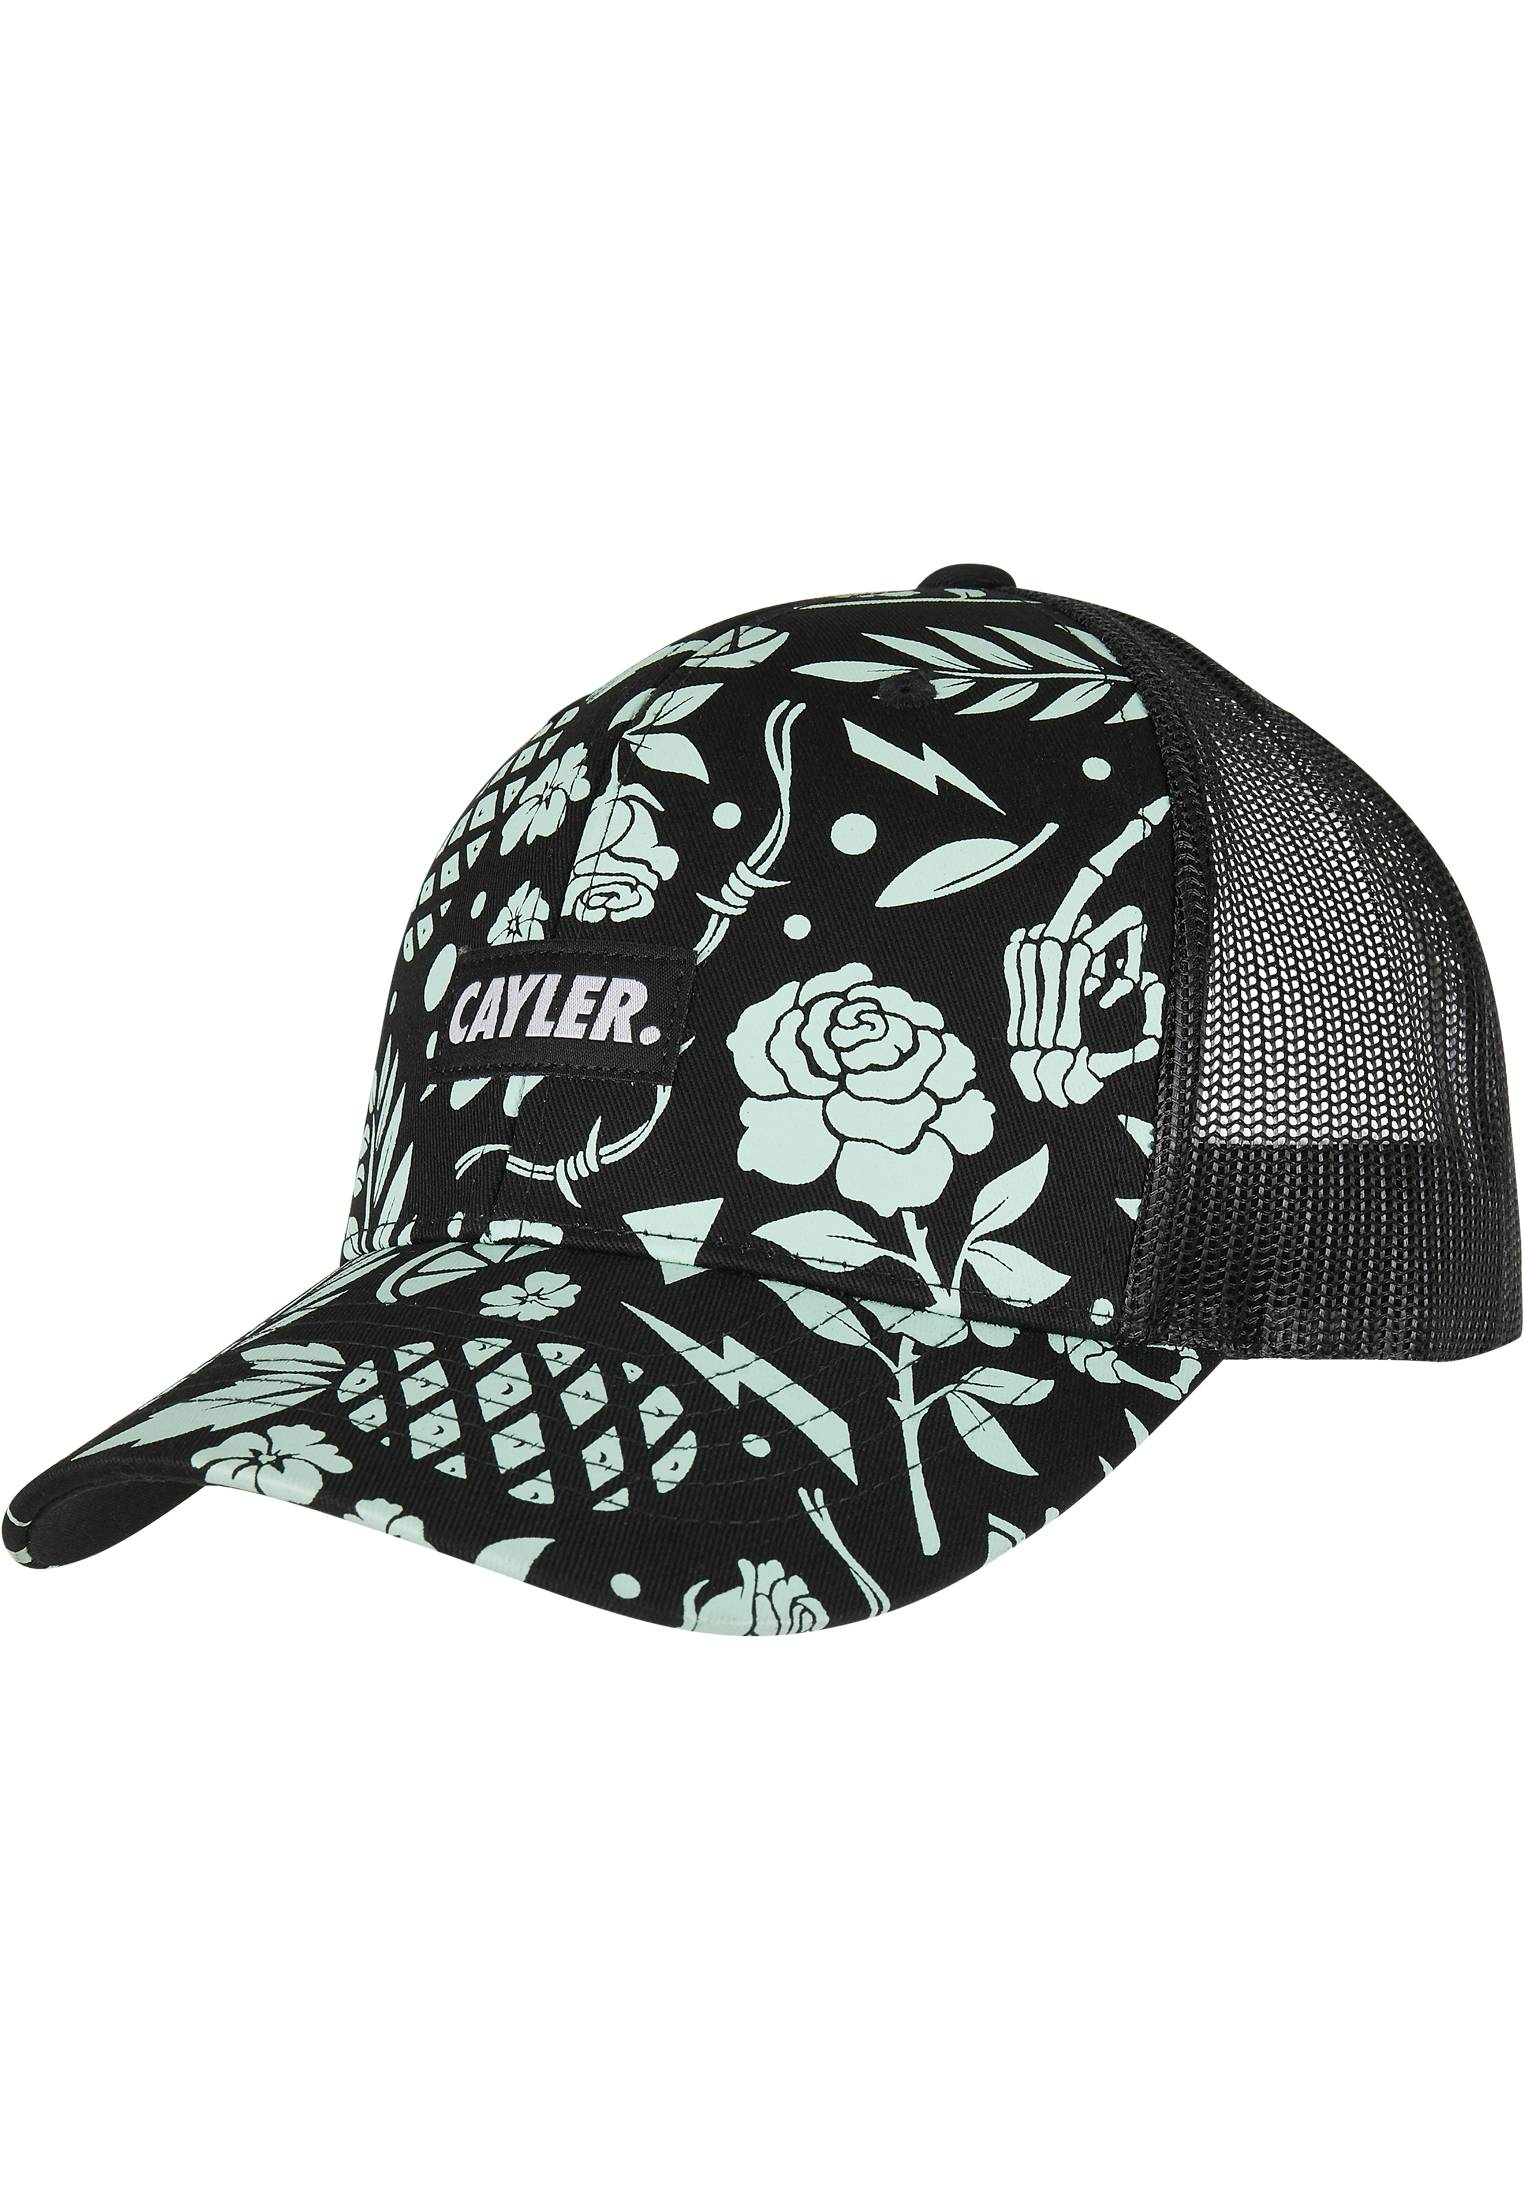 Urban Classics C&S WL Statement Leaves N Wires Curved Trucker Cap black/mint - One Size